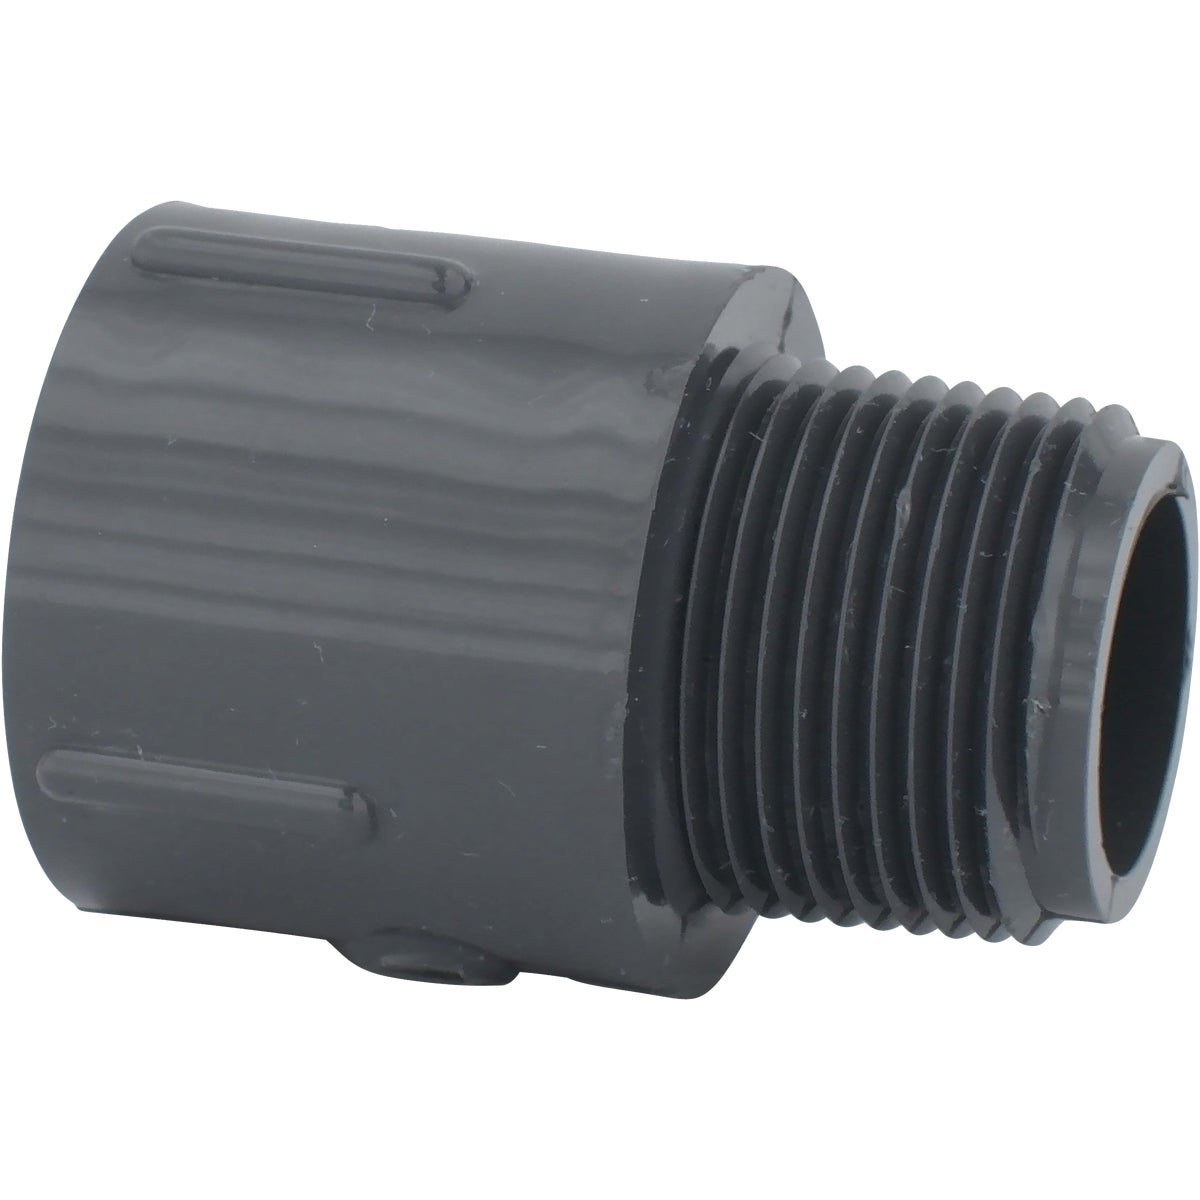 "3/4"" SCH80 MALE ADAPTER - 304078 by Genova Inc"